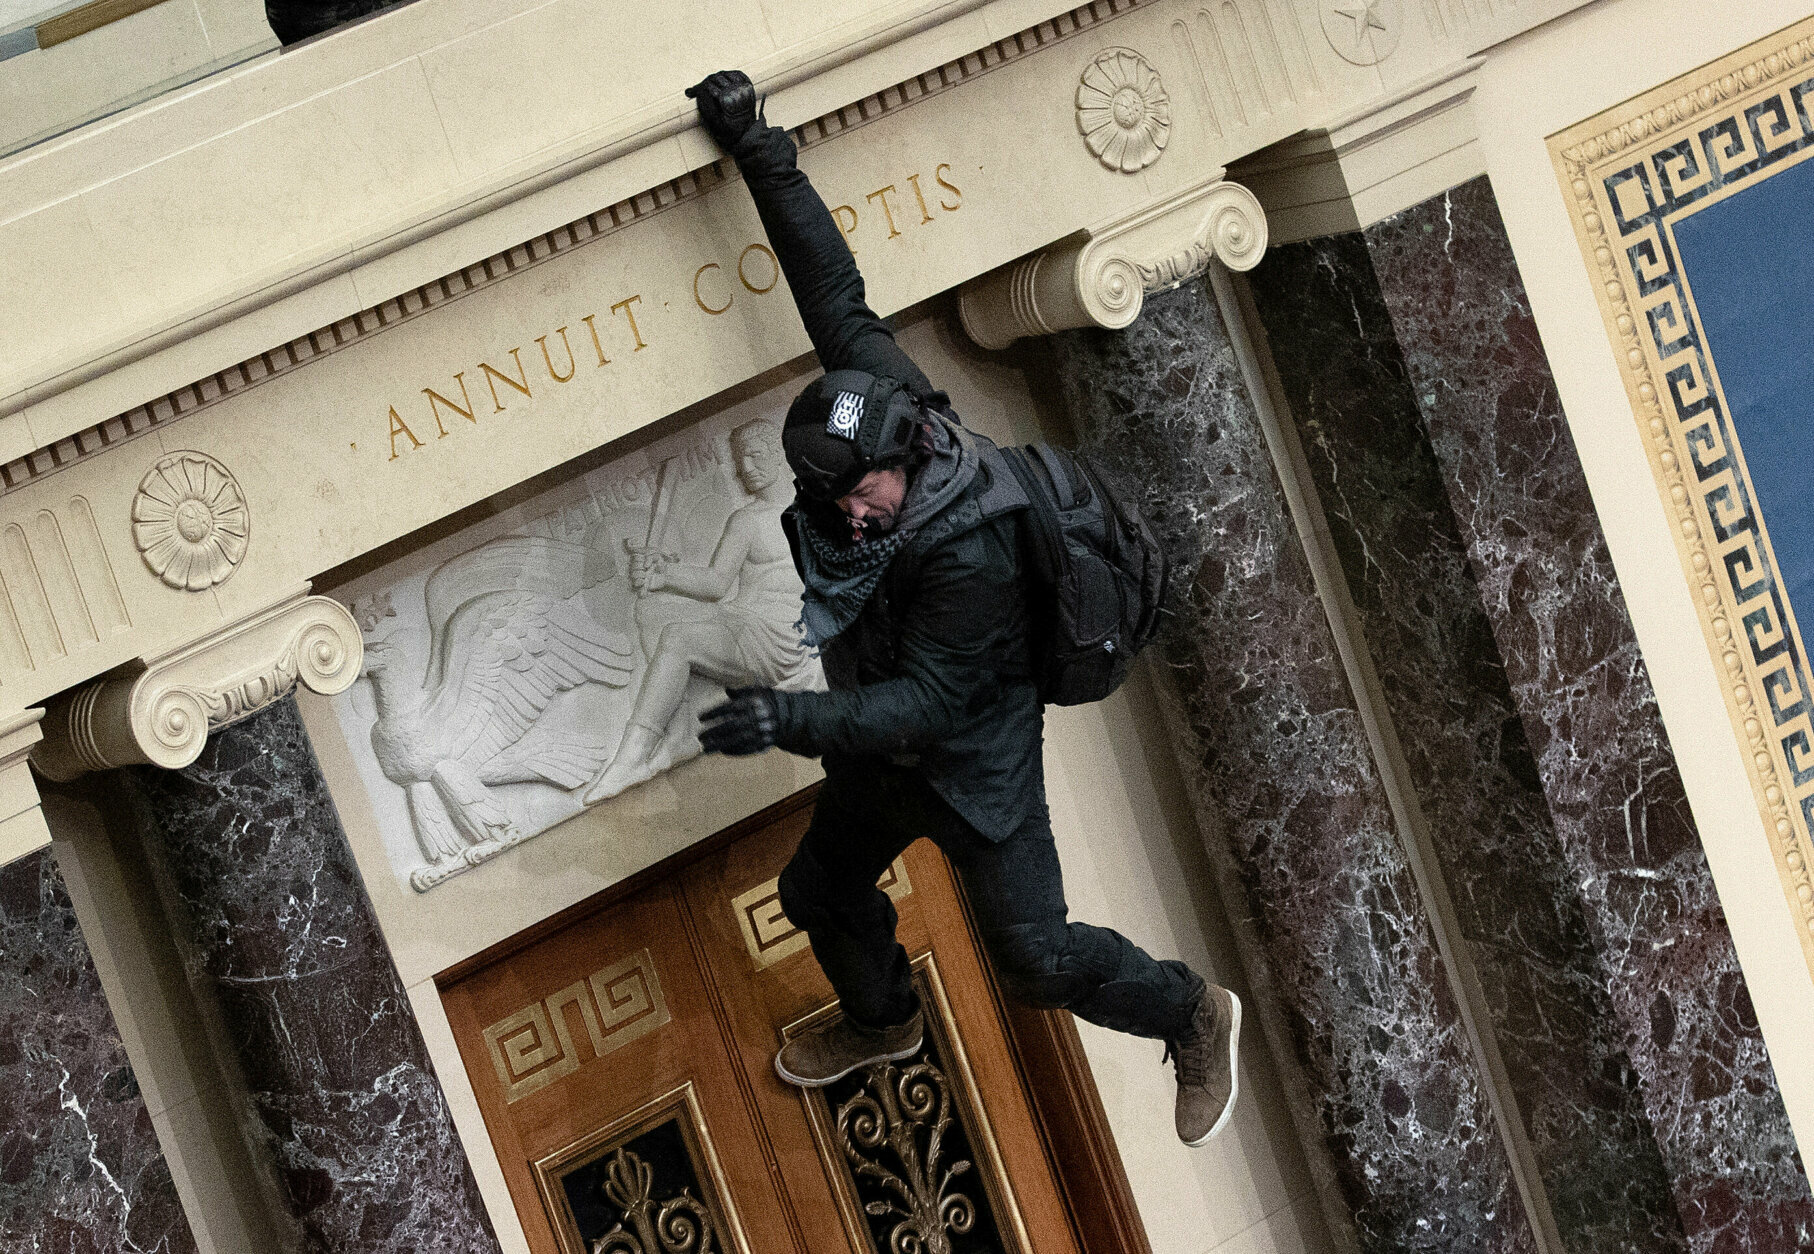 WASHINGTON, DC - JANUARY 06: A protester supporting U.S. President Donald Trump  jumps from the public gallery to the floor of the Senate chamber at the U.S. Capitol Building on January 06, 2021 in Washington, DC. Congress held a joint session today to ratify President-elect Joe Biden's 306-232 Electoral College win over President Donald Trump. A group of Republican senators said they would reject the Electoral College votes of several states unless Congress appointed a commission to audit the election results (Photo by Win McNamee/Getty Images)